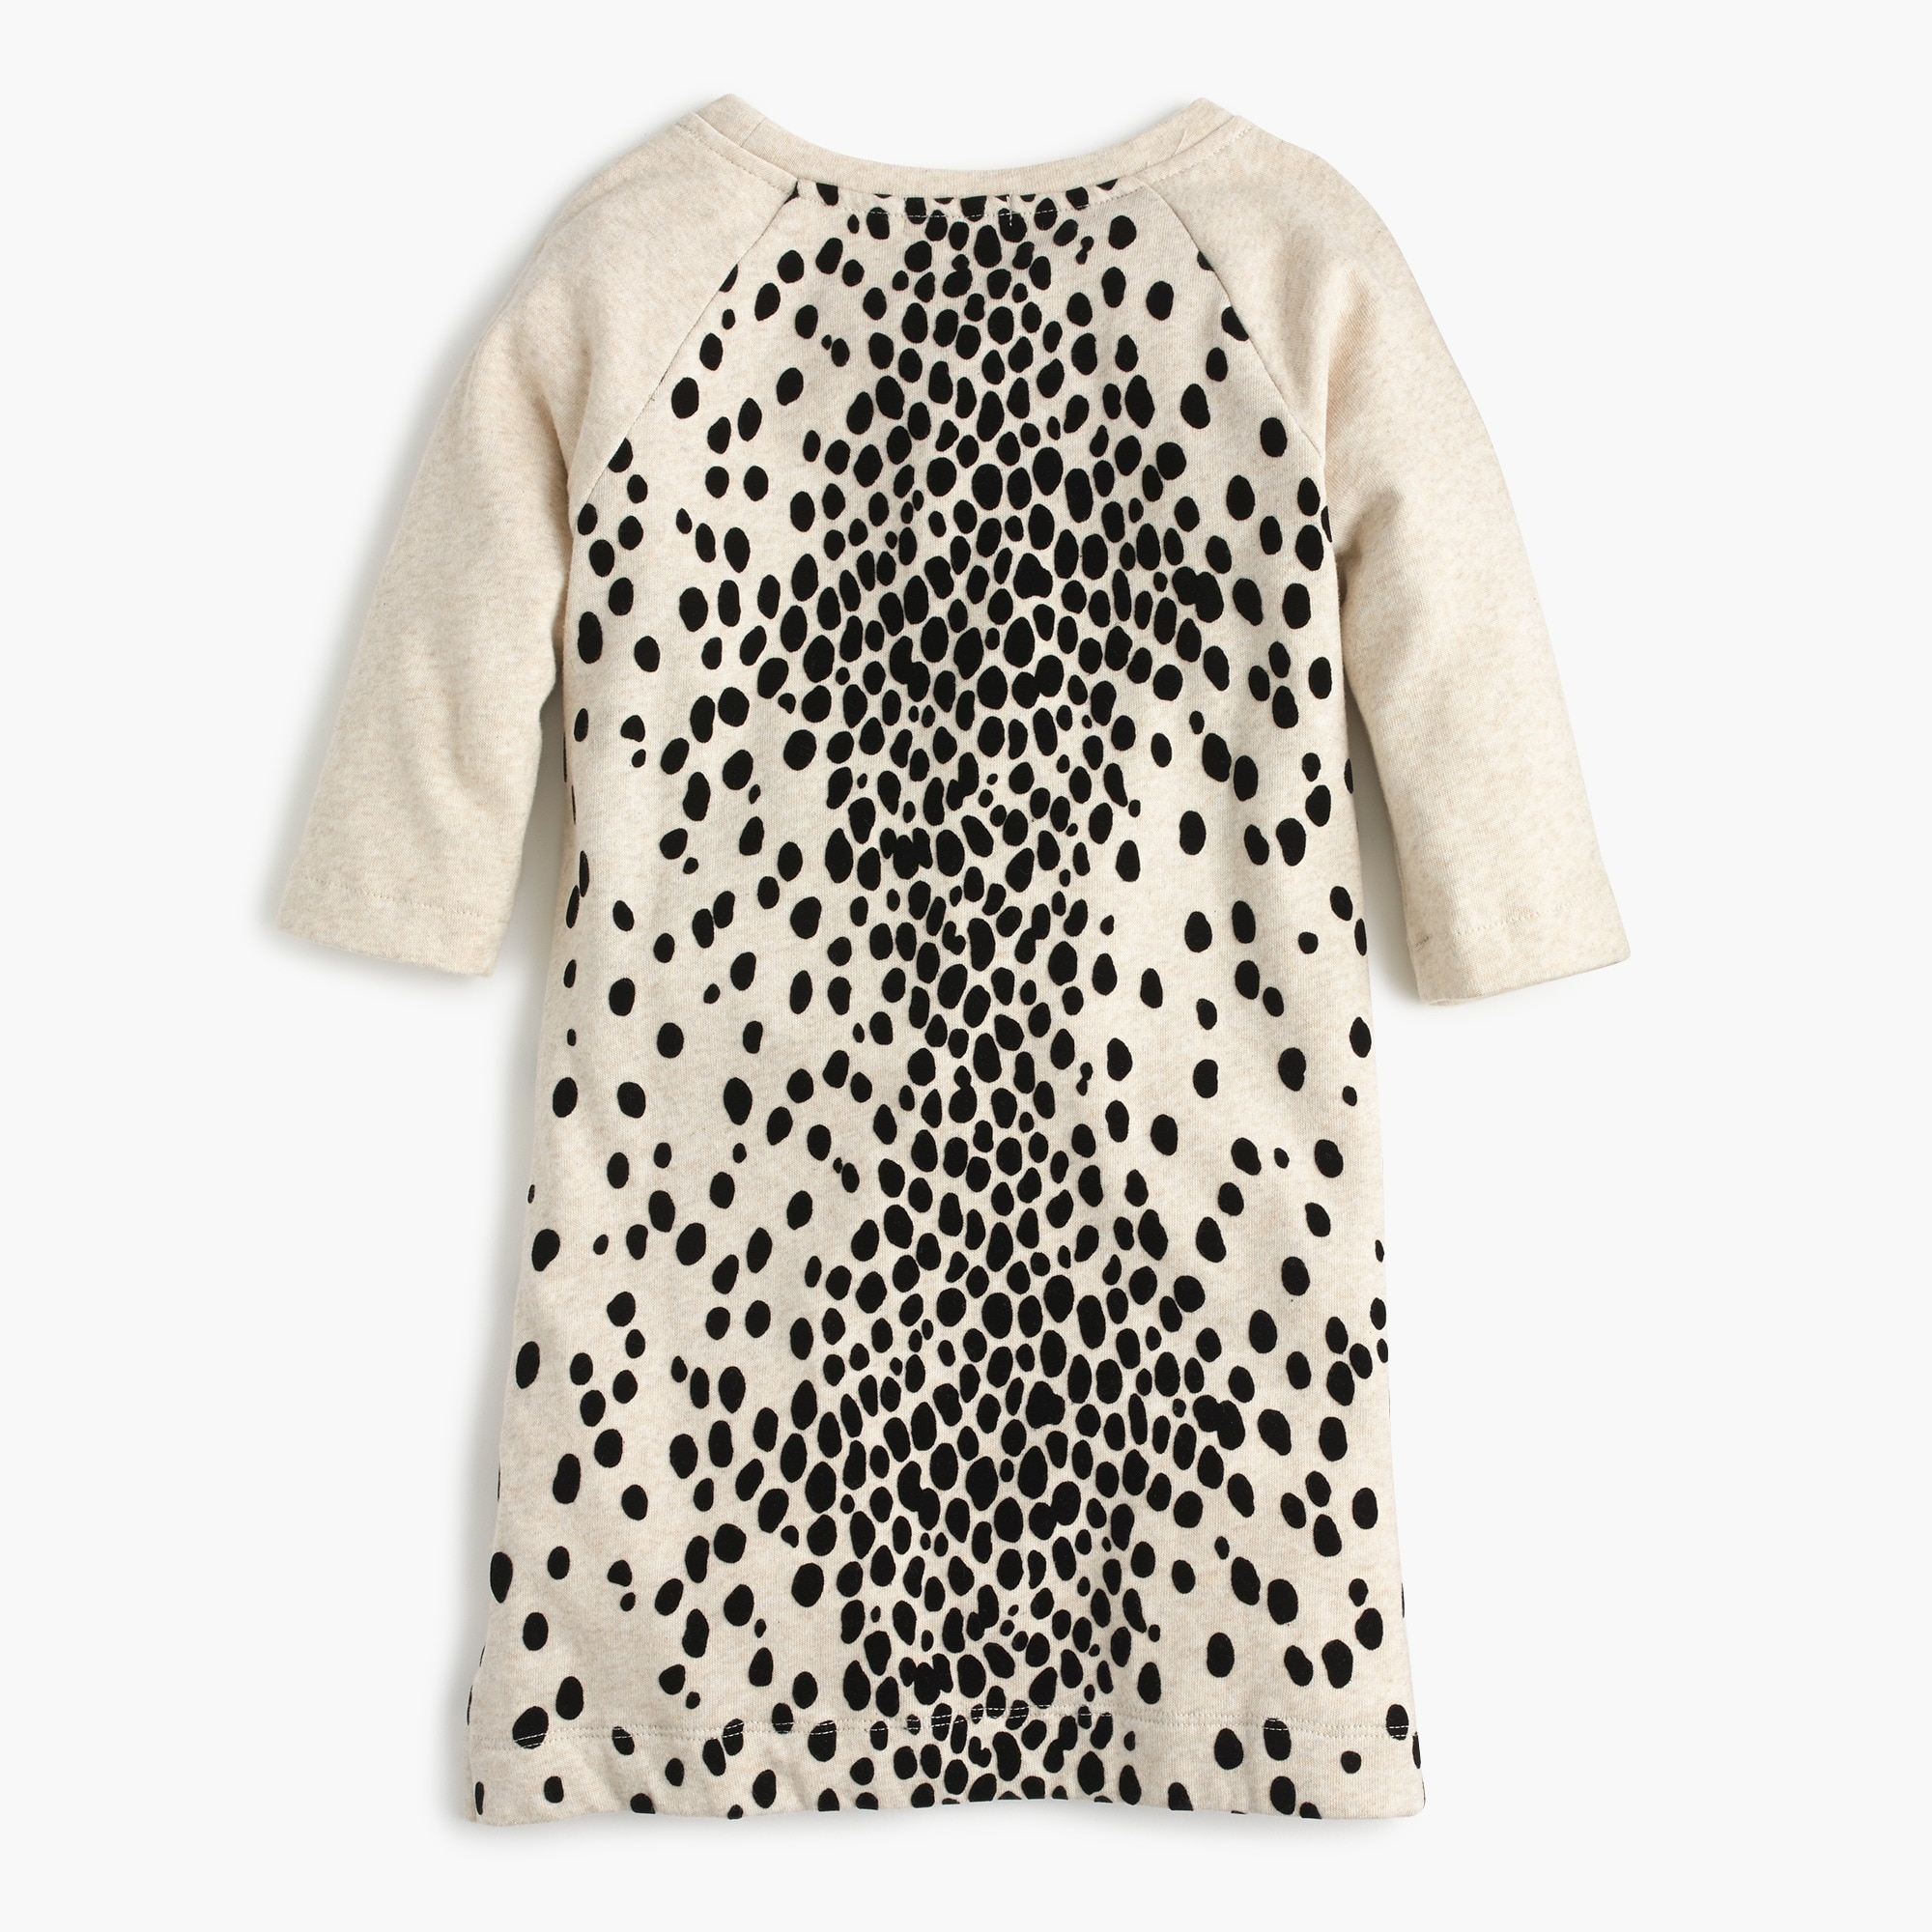 Image 2 for Girls' leopard-flocked sweatshirt-dress